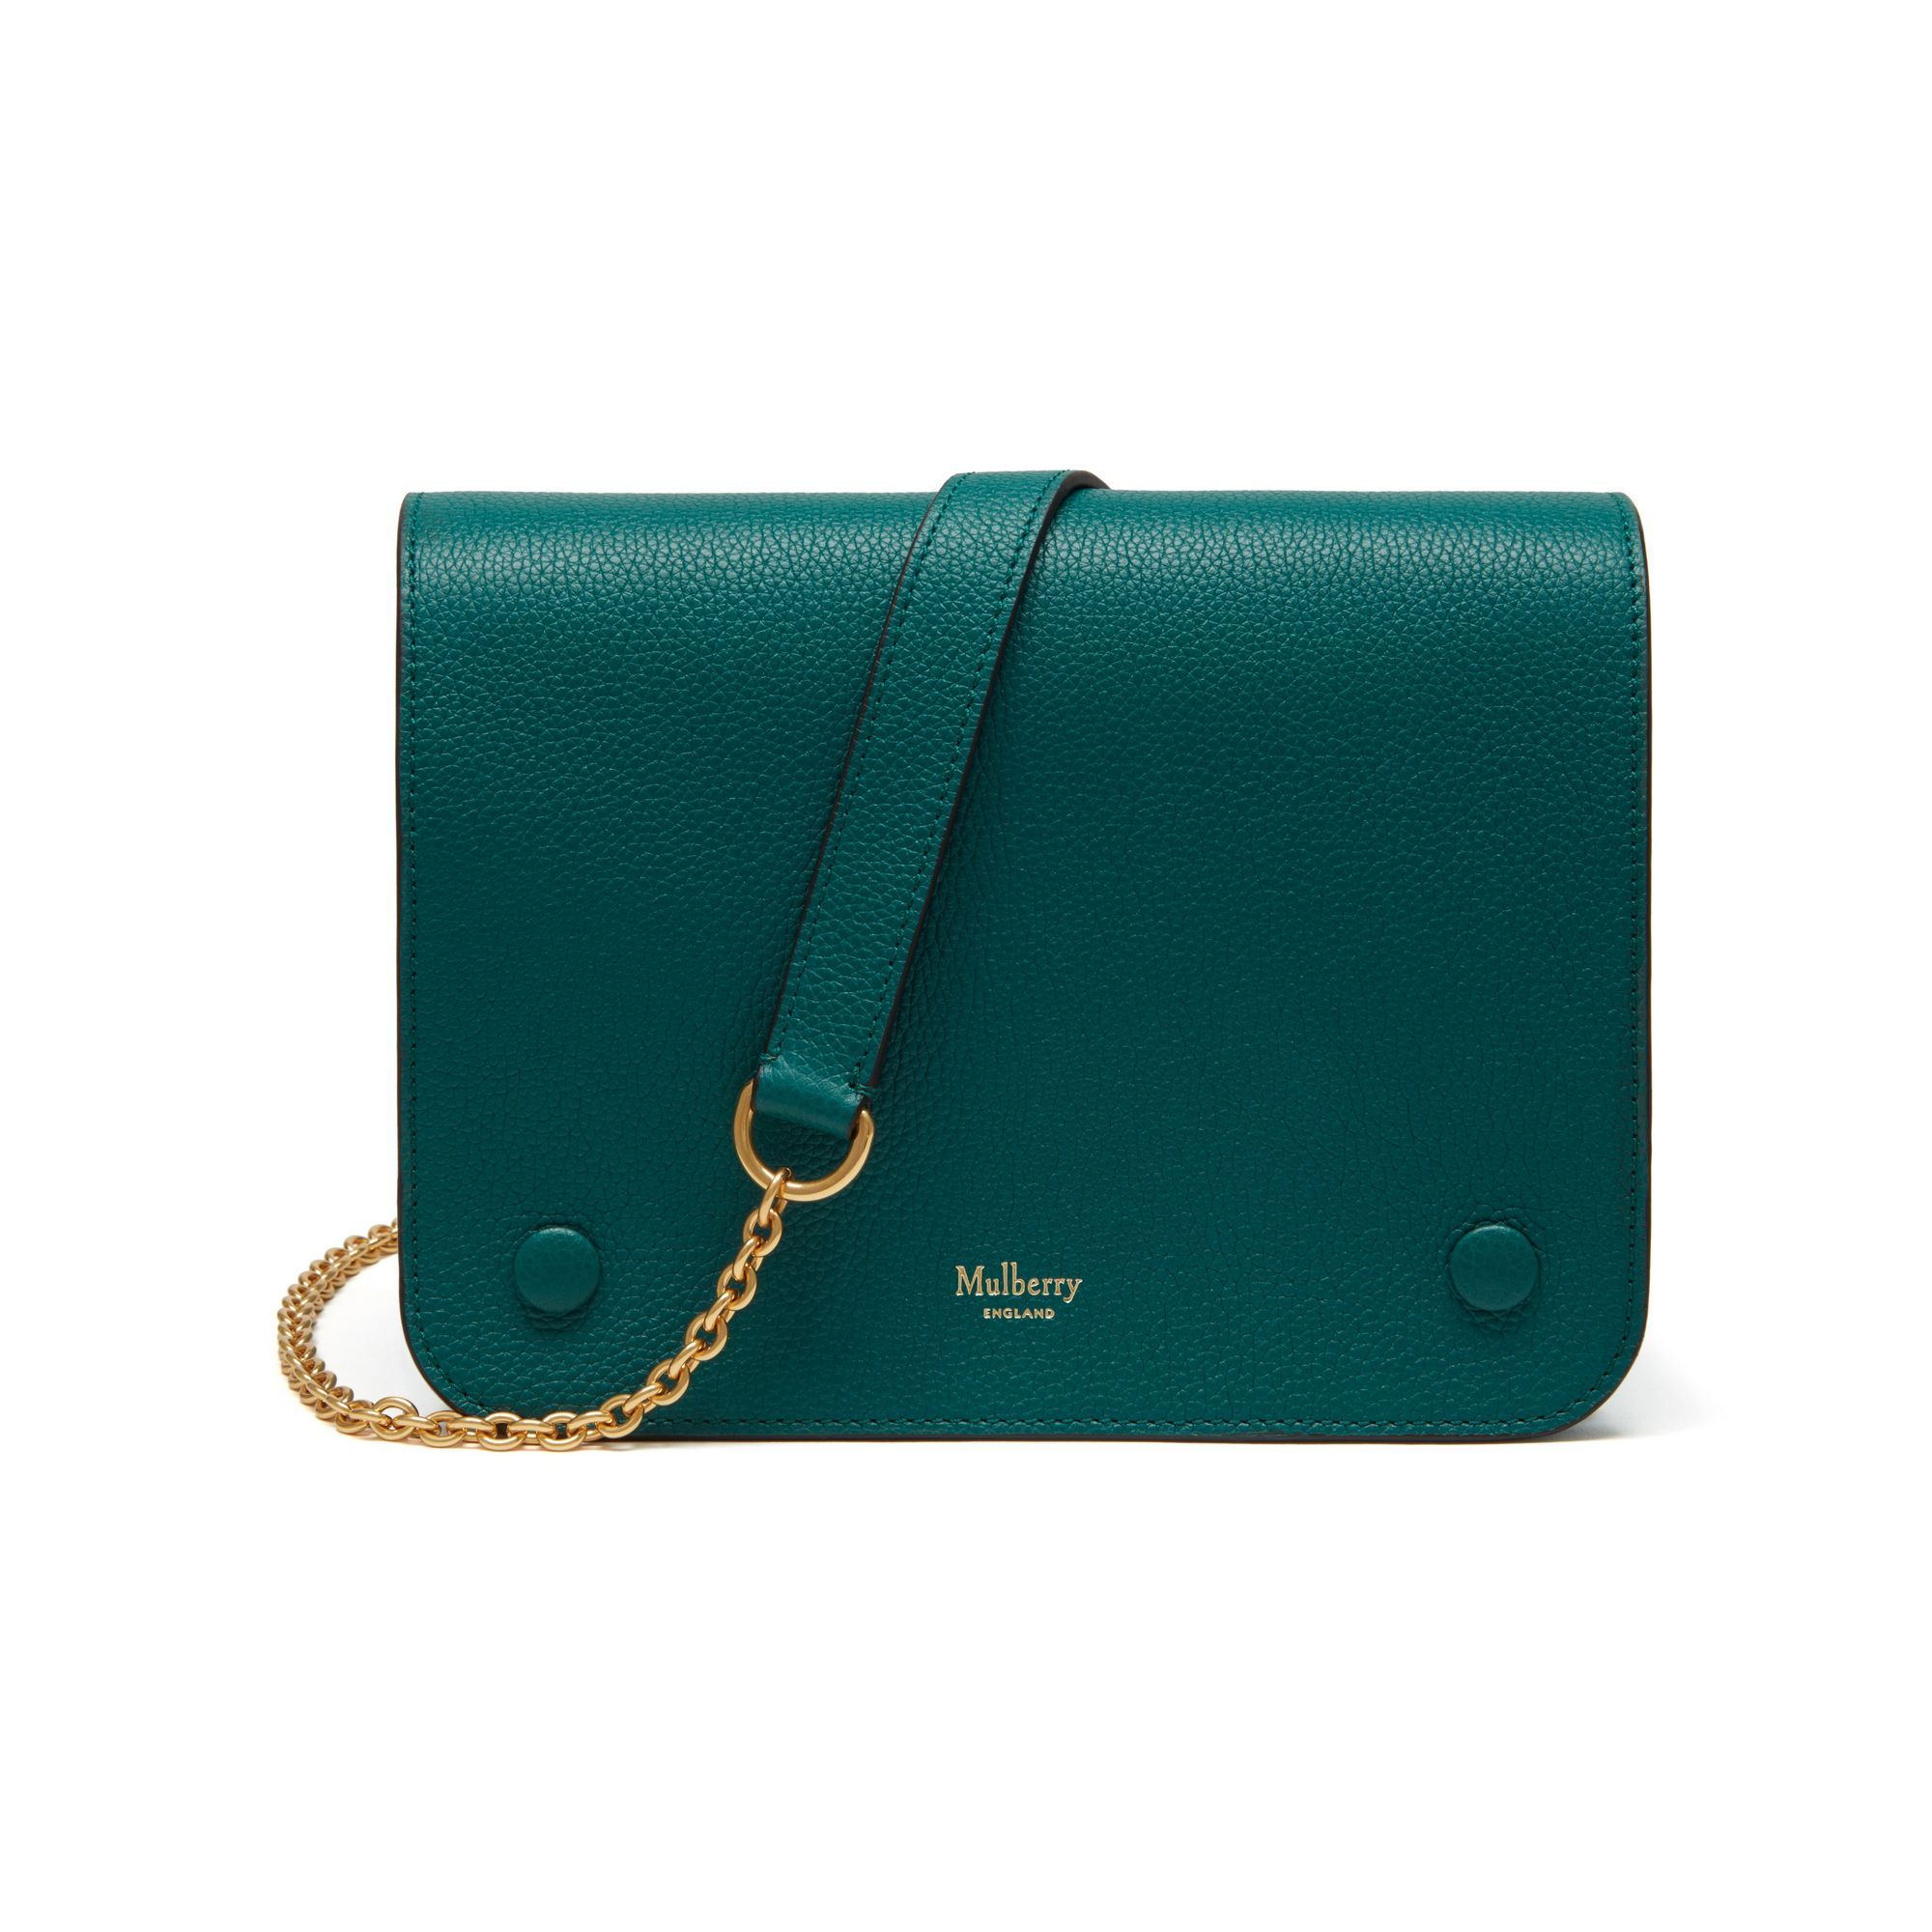 218dd7634b3 sale mulberry classic vintage sheepskin shearling bayswater 54456 7b429;  where to buy clifton ocean green small classic grain clifton mulberry 5306c  f4ec0